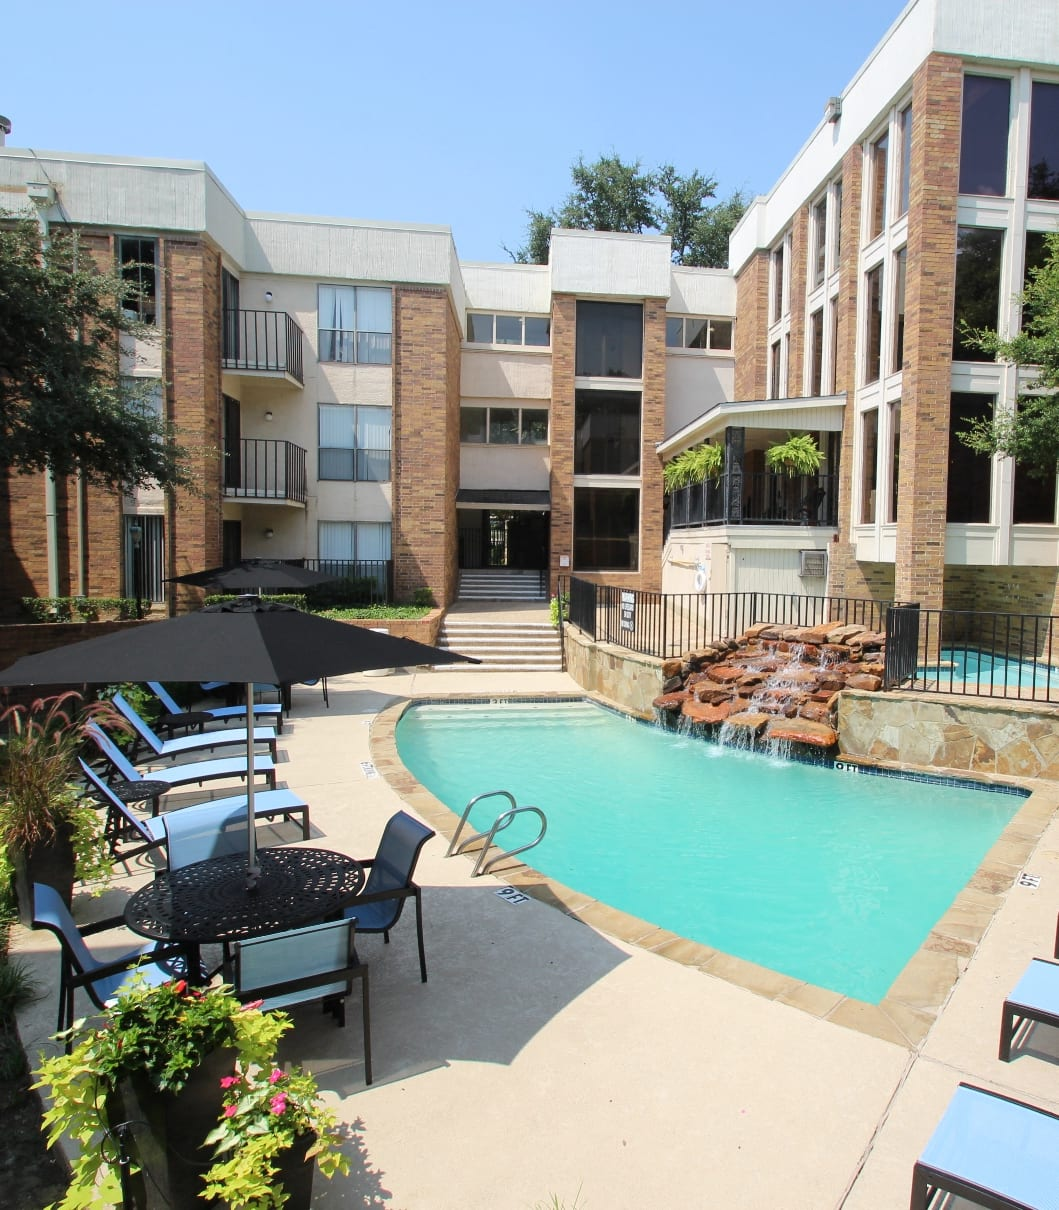 This is a picture of the main pool area at Cambridge Court Apartments in Dallas, TX.